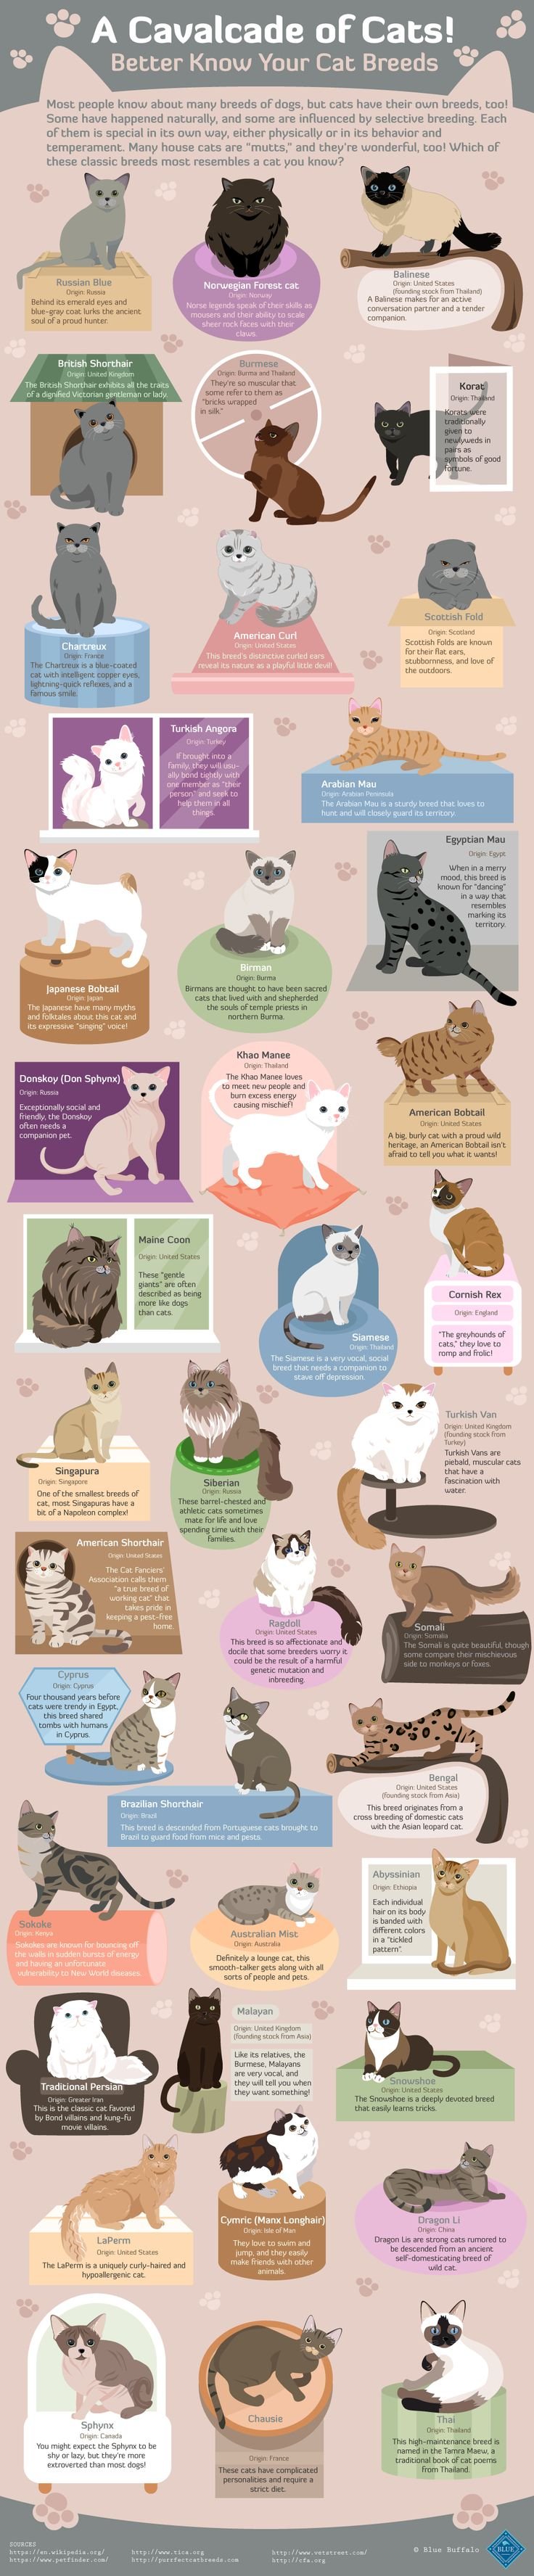 Best 25 Grey cat breeds ideas on Pinterest